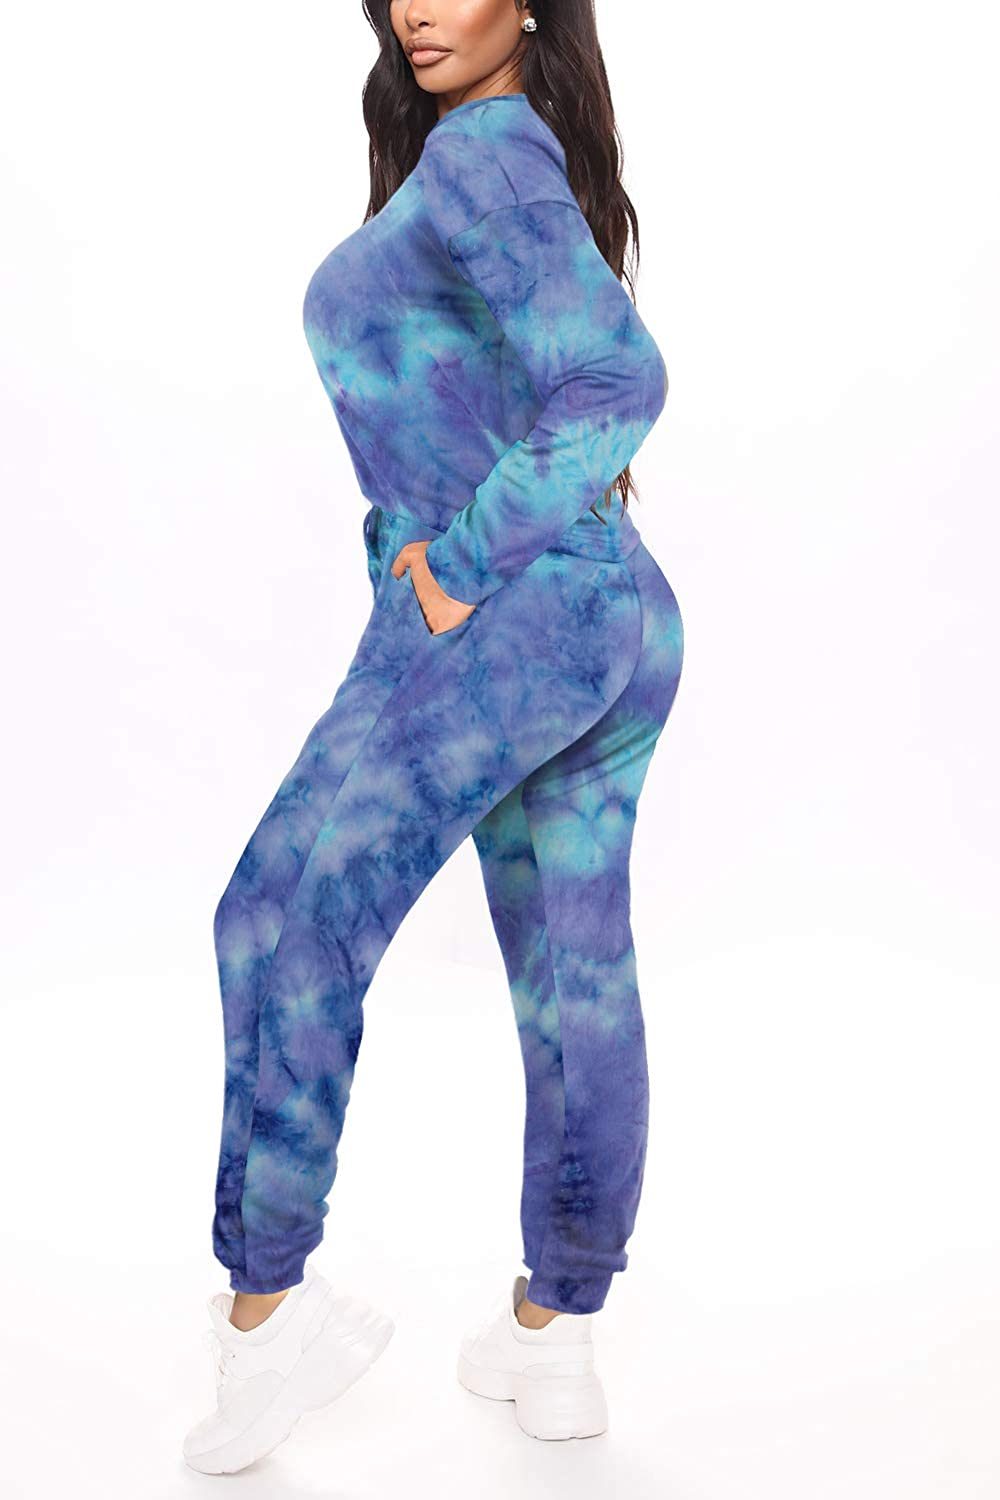 WFTBDREAM Womens Two Piece Outfits Tie Dye Long Sleeve Pullover Pajamas Sets